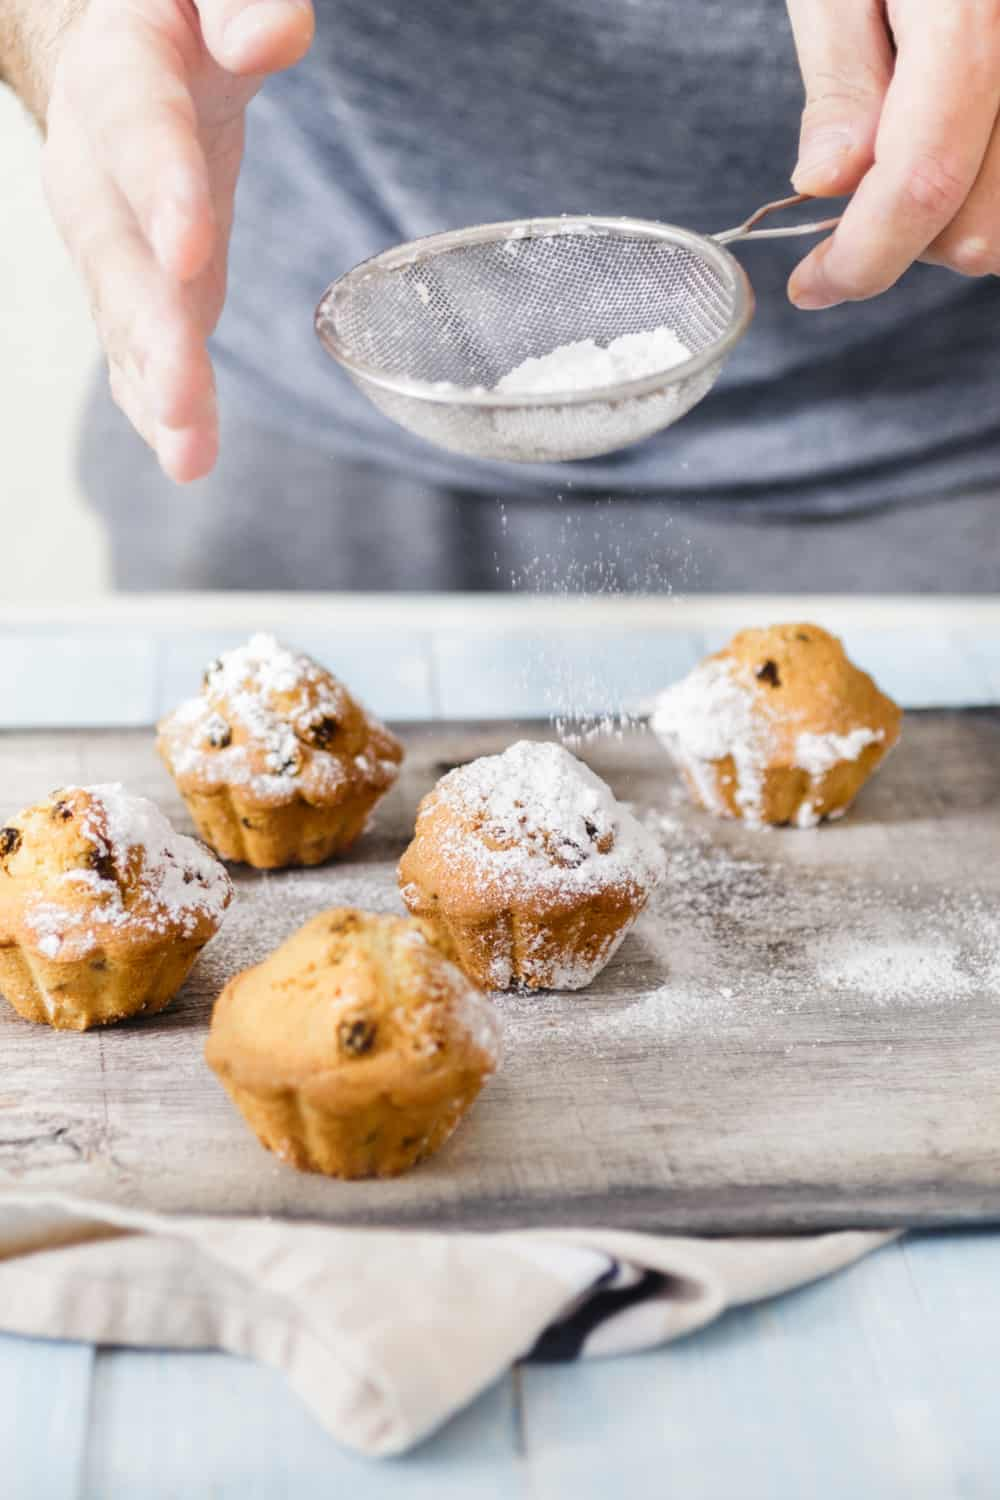 The Risk of Consuming Expired Powdered Sugar